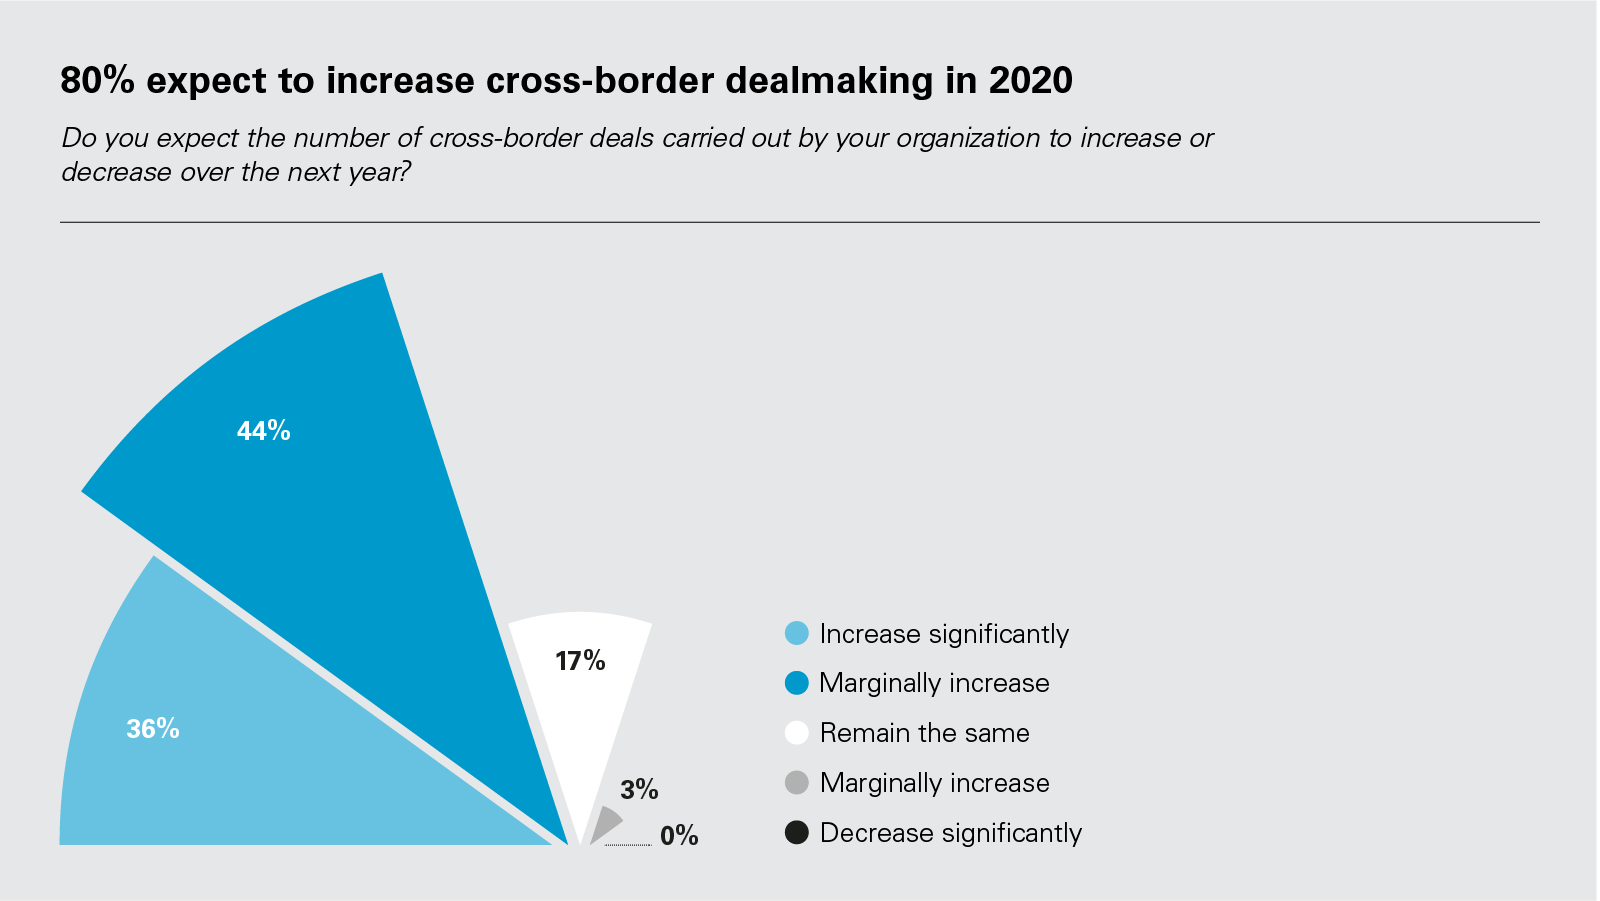 80% expect to increase cross-border dealmaking in 2020